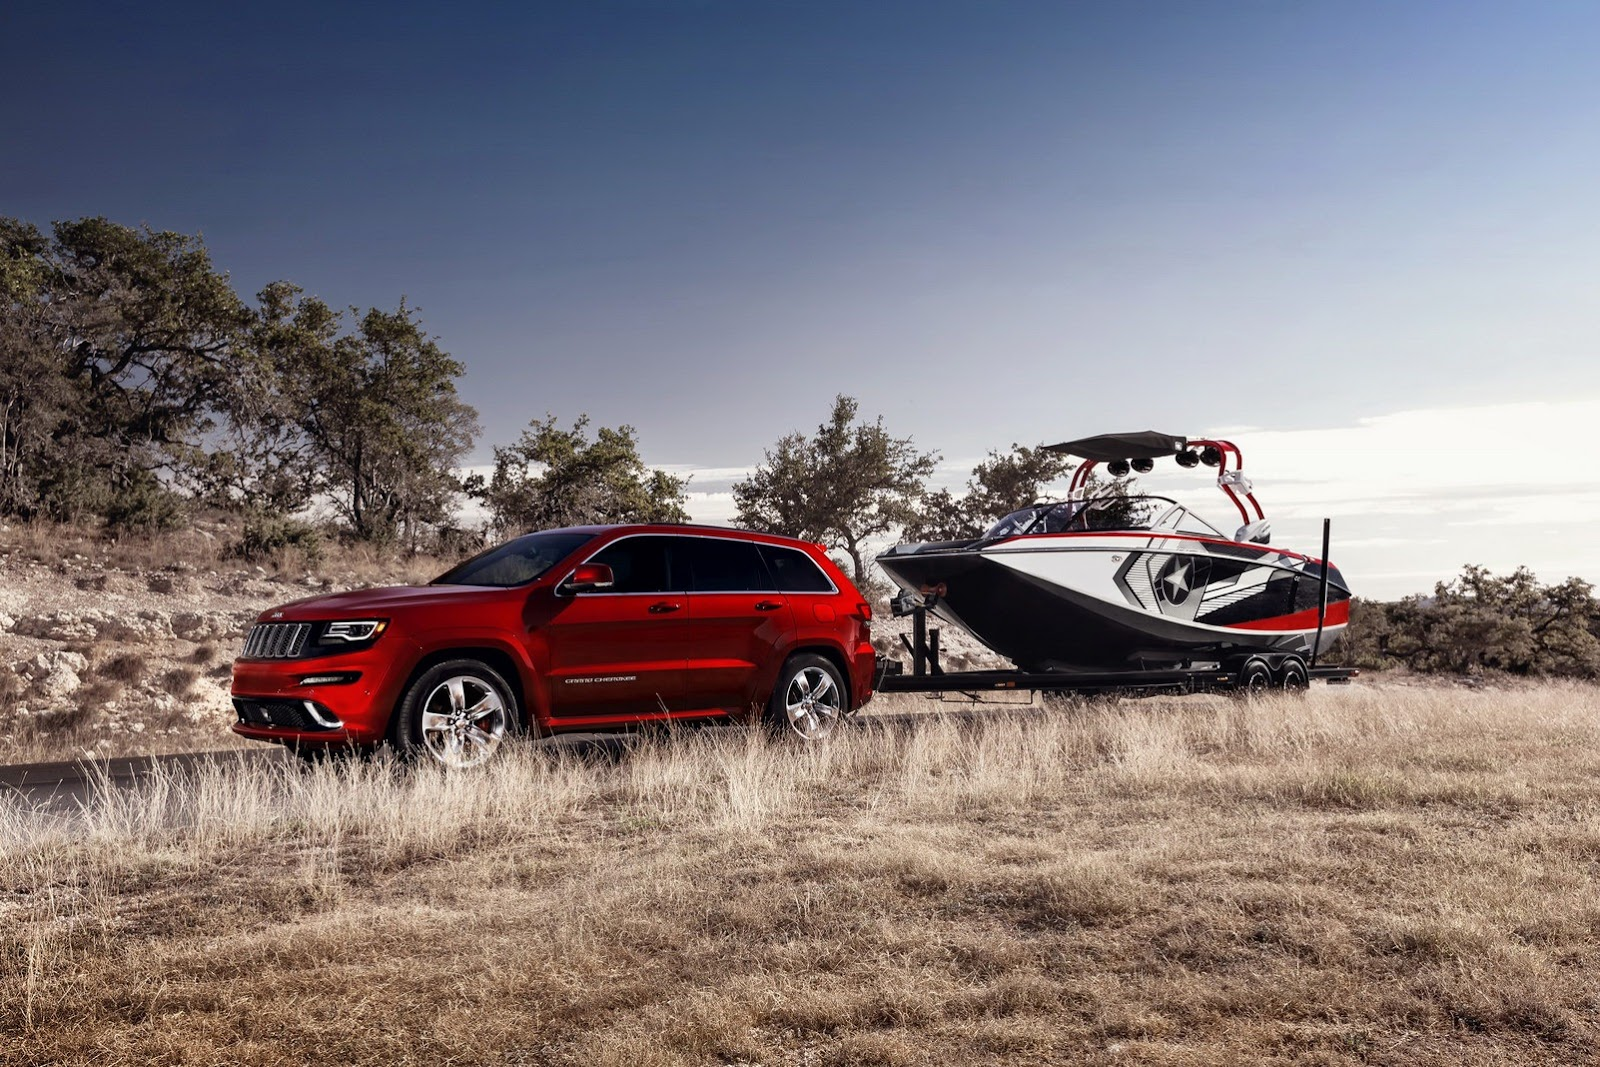 2014 jeep grand cherokee srt photos and details autotribute. Black Bedroom Furniture Sets. Home Design Ideas